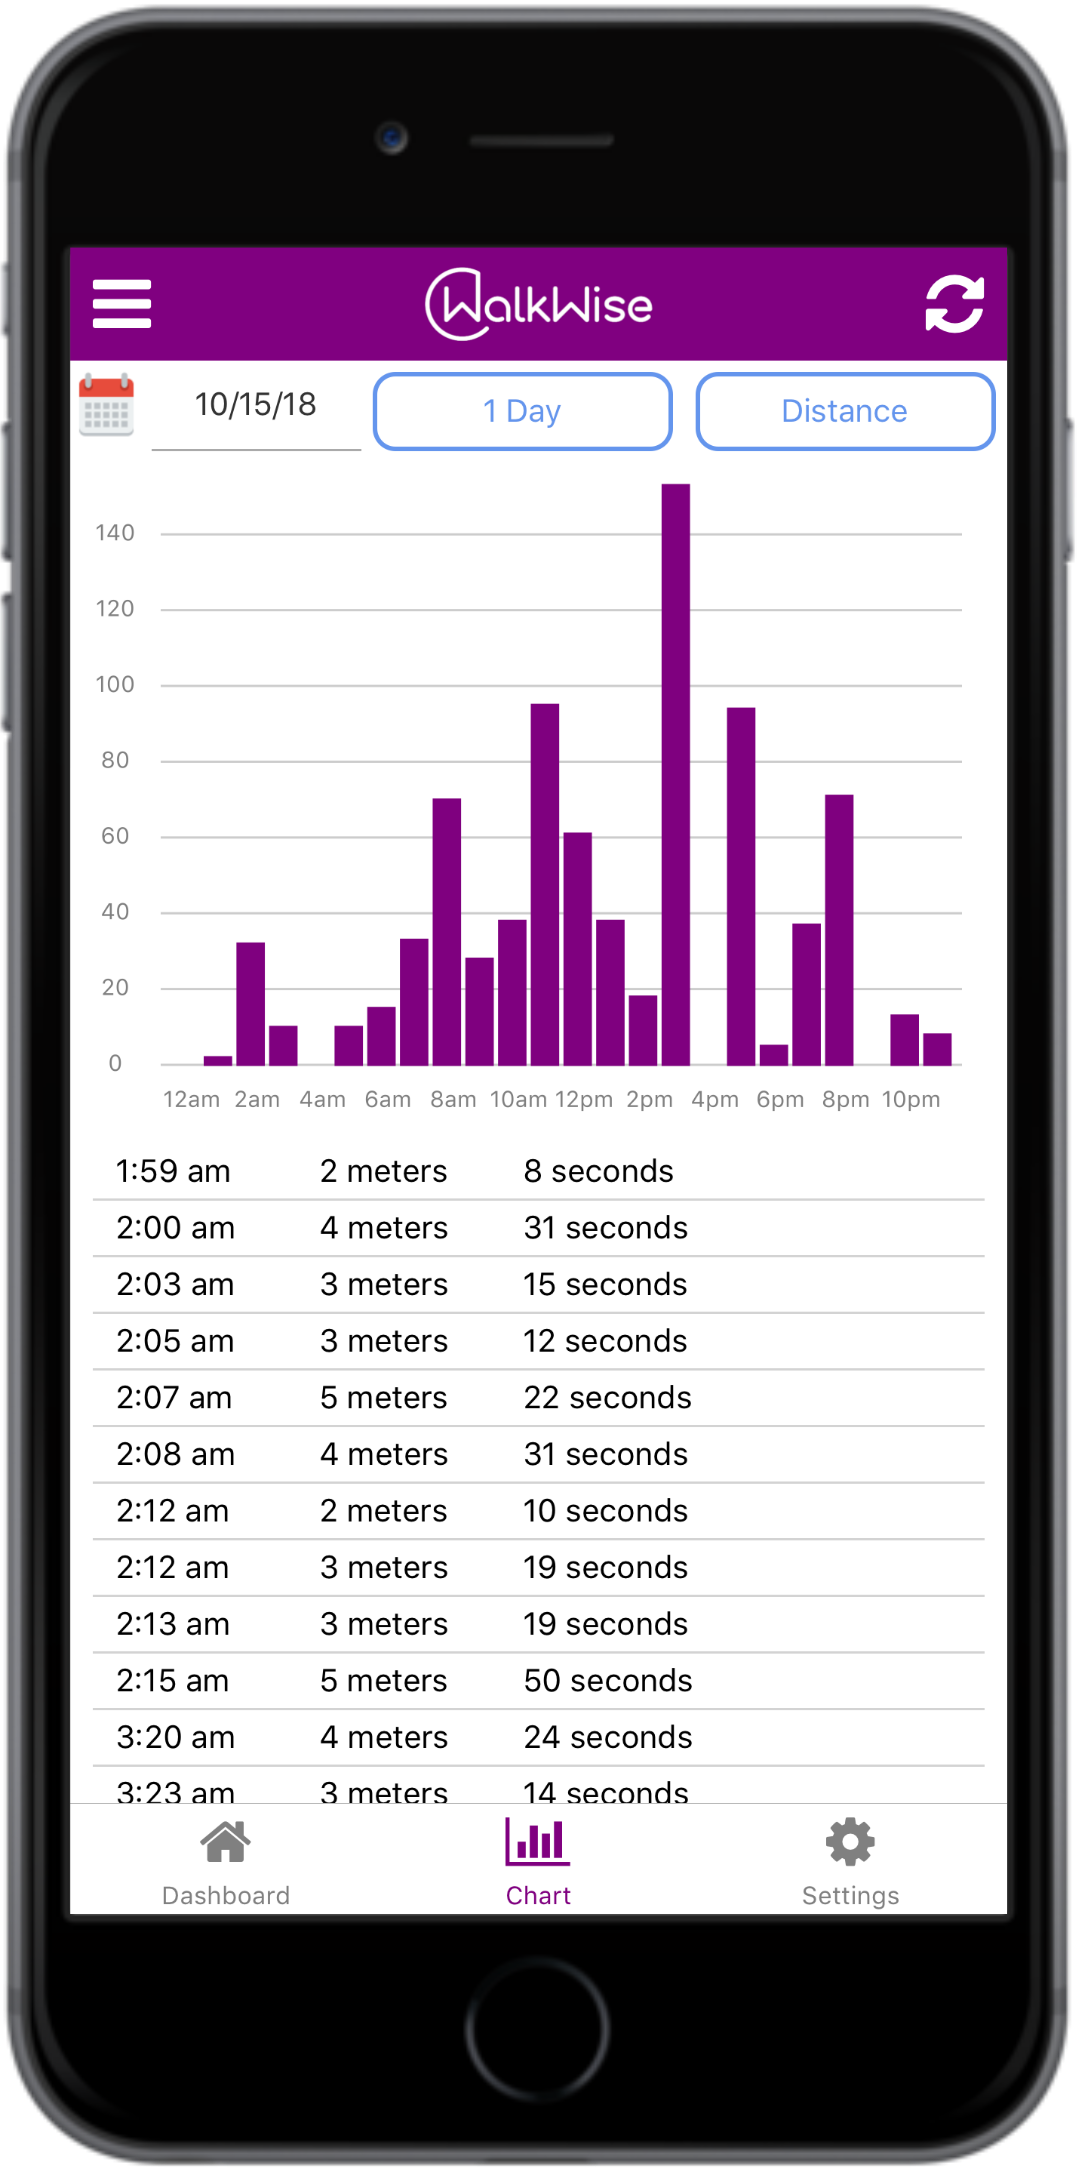 See activity minute-by-minute, hour-by-hour